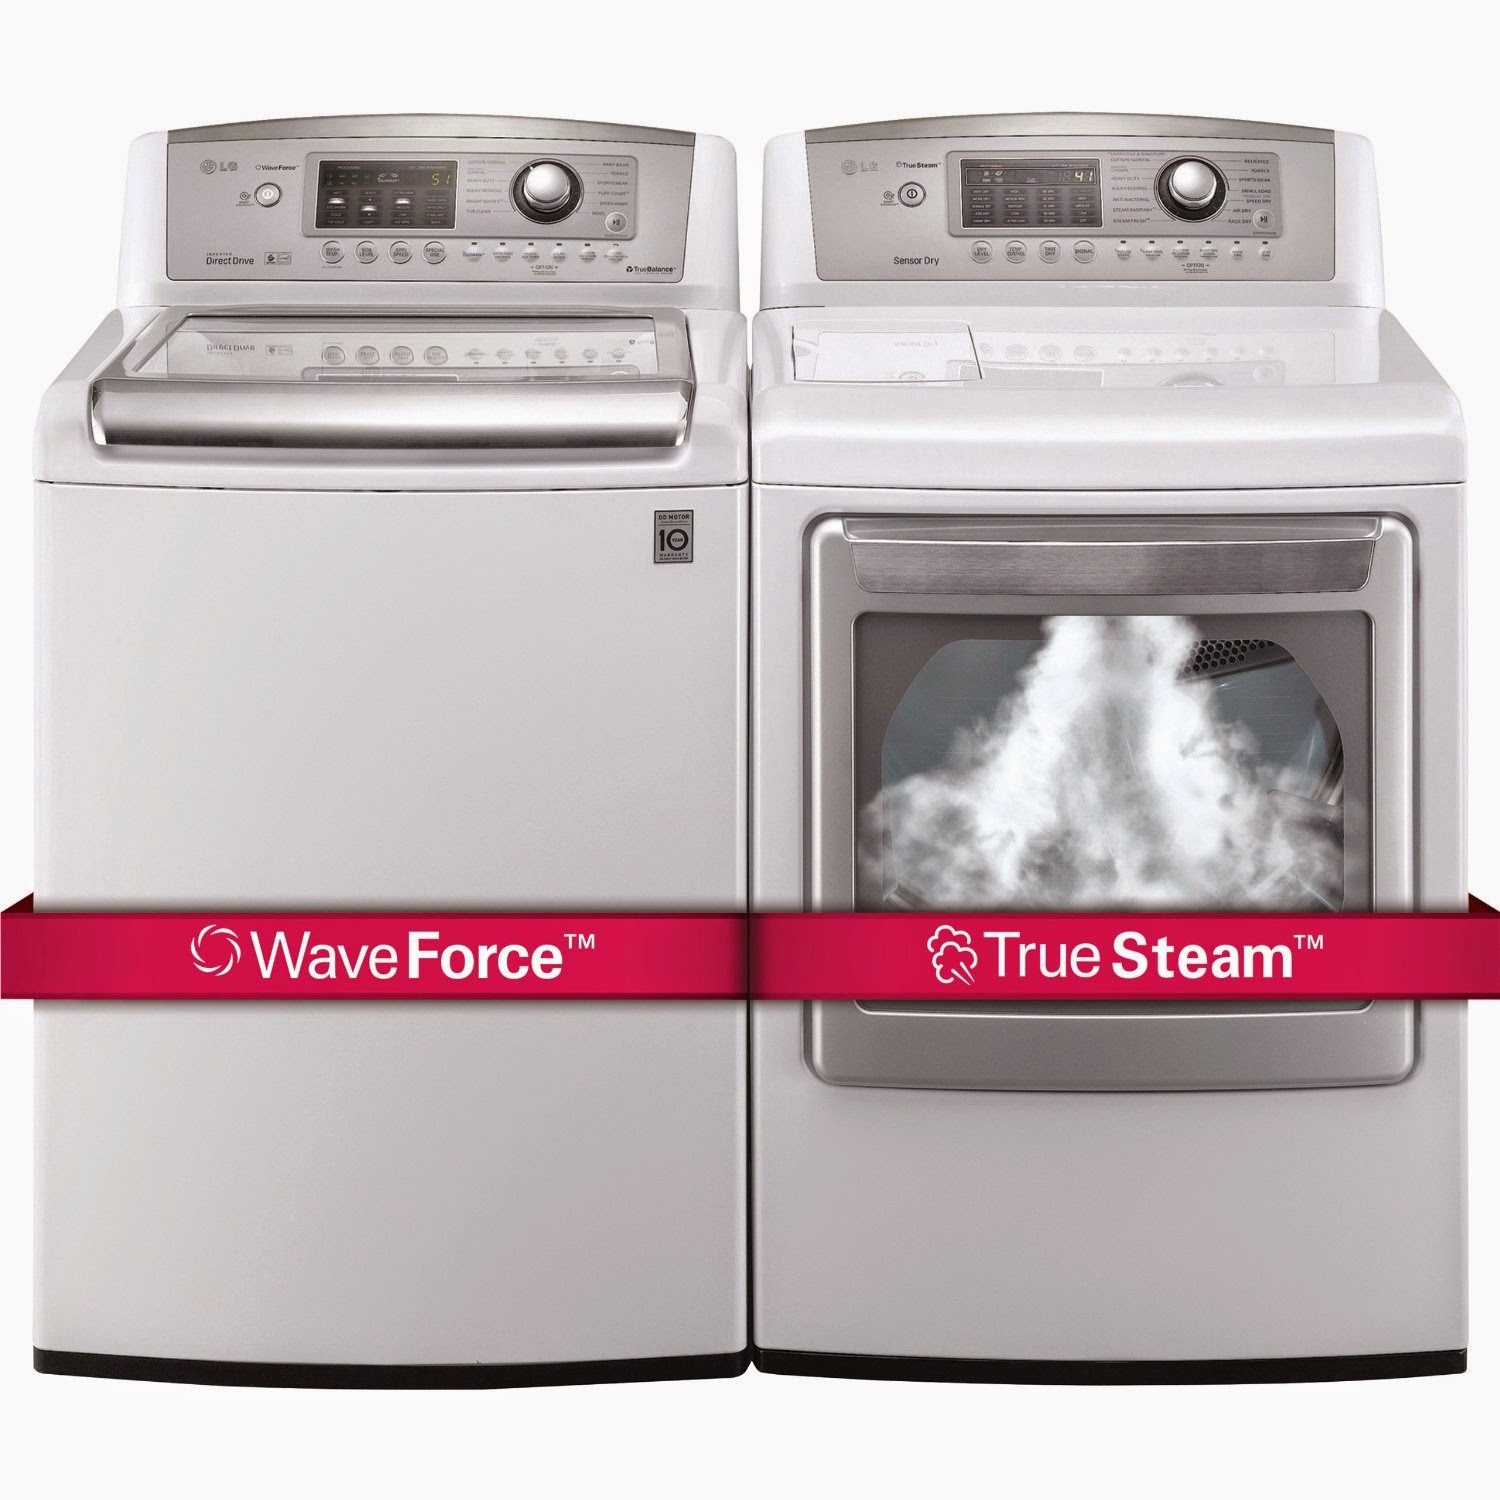 Which Is The Best Top Loading Washing Machine Washer And Dryer Sets On Sale Top Load Washer And Dryer Sets On Sale